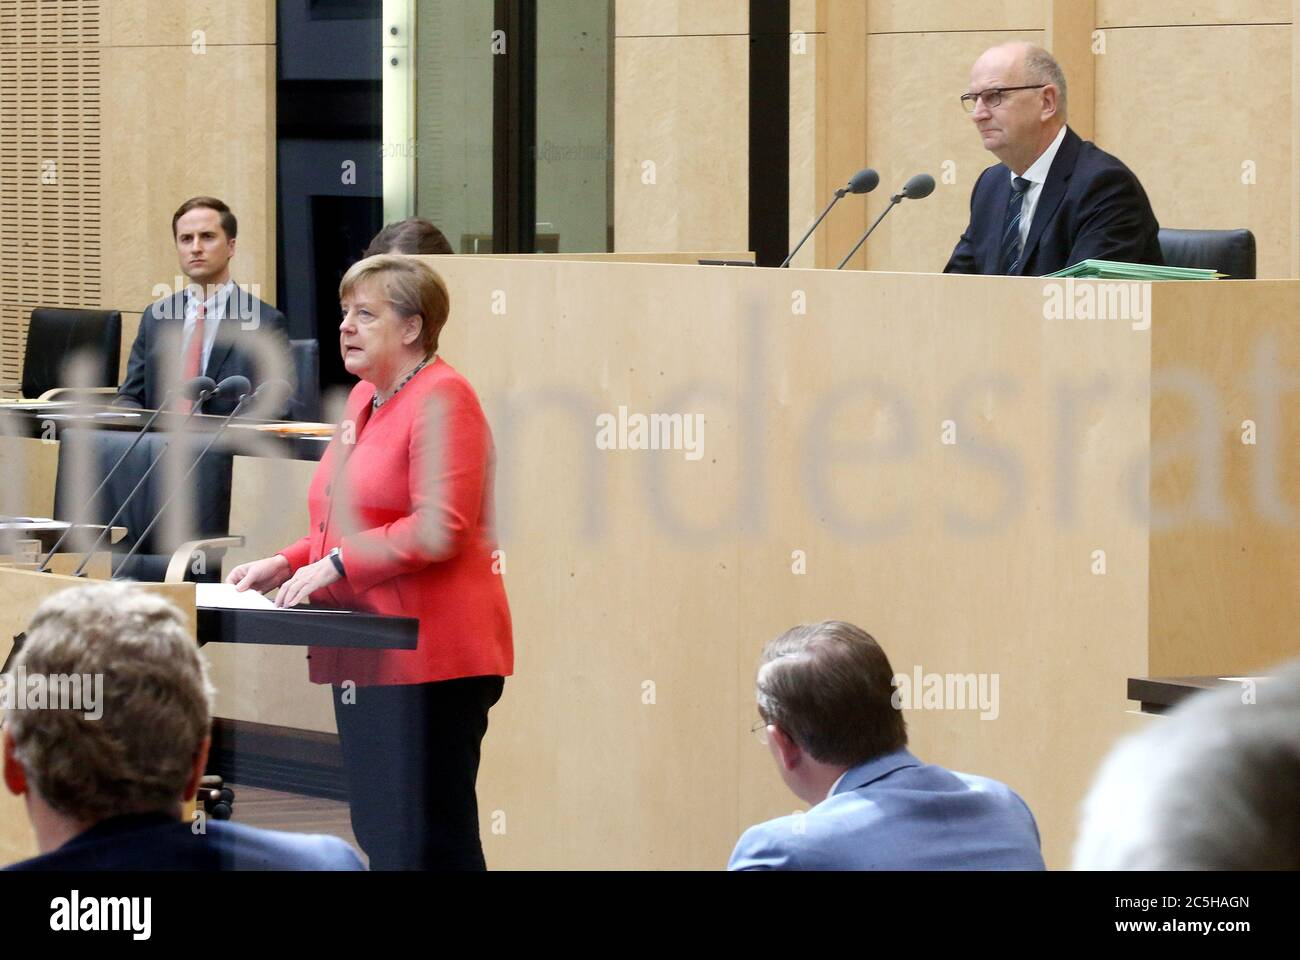 Berlin, Germany. 03rd July, 2020. Chancellor Angela Merkel gives a speech in the Bundesrat on the objectives of the EU Council Presidency, Dietmar Woidke (SPD, r), President of the Bundesrat, follows the speech. (Photographed through a window) Credit: Wolfgang Kumm/dpa/Alamy Live News Stock Photo